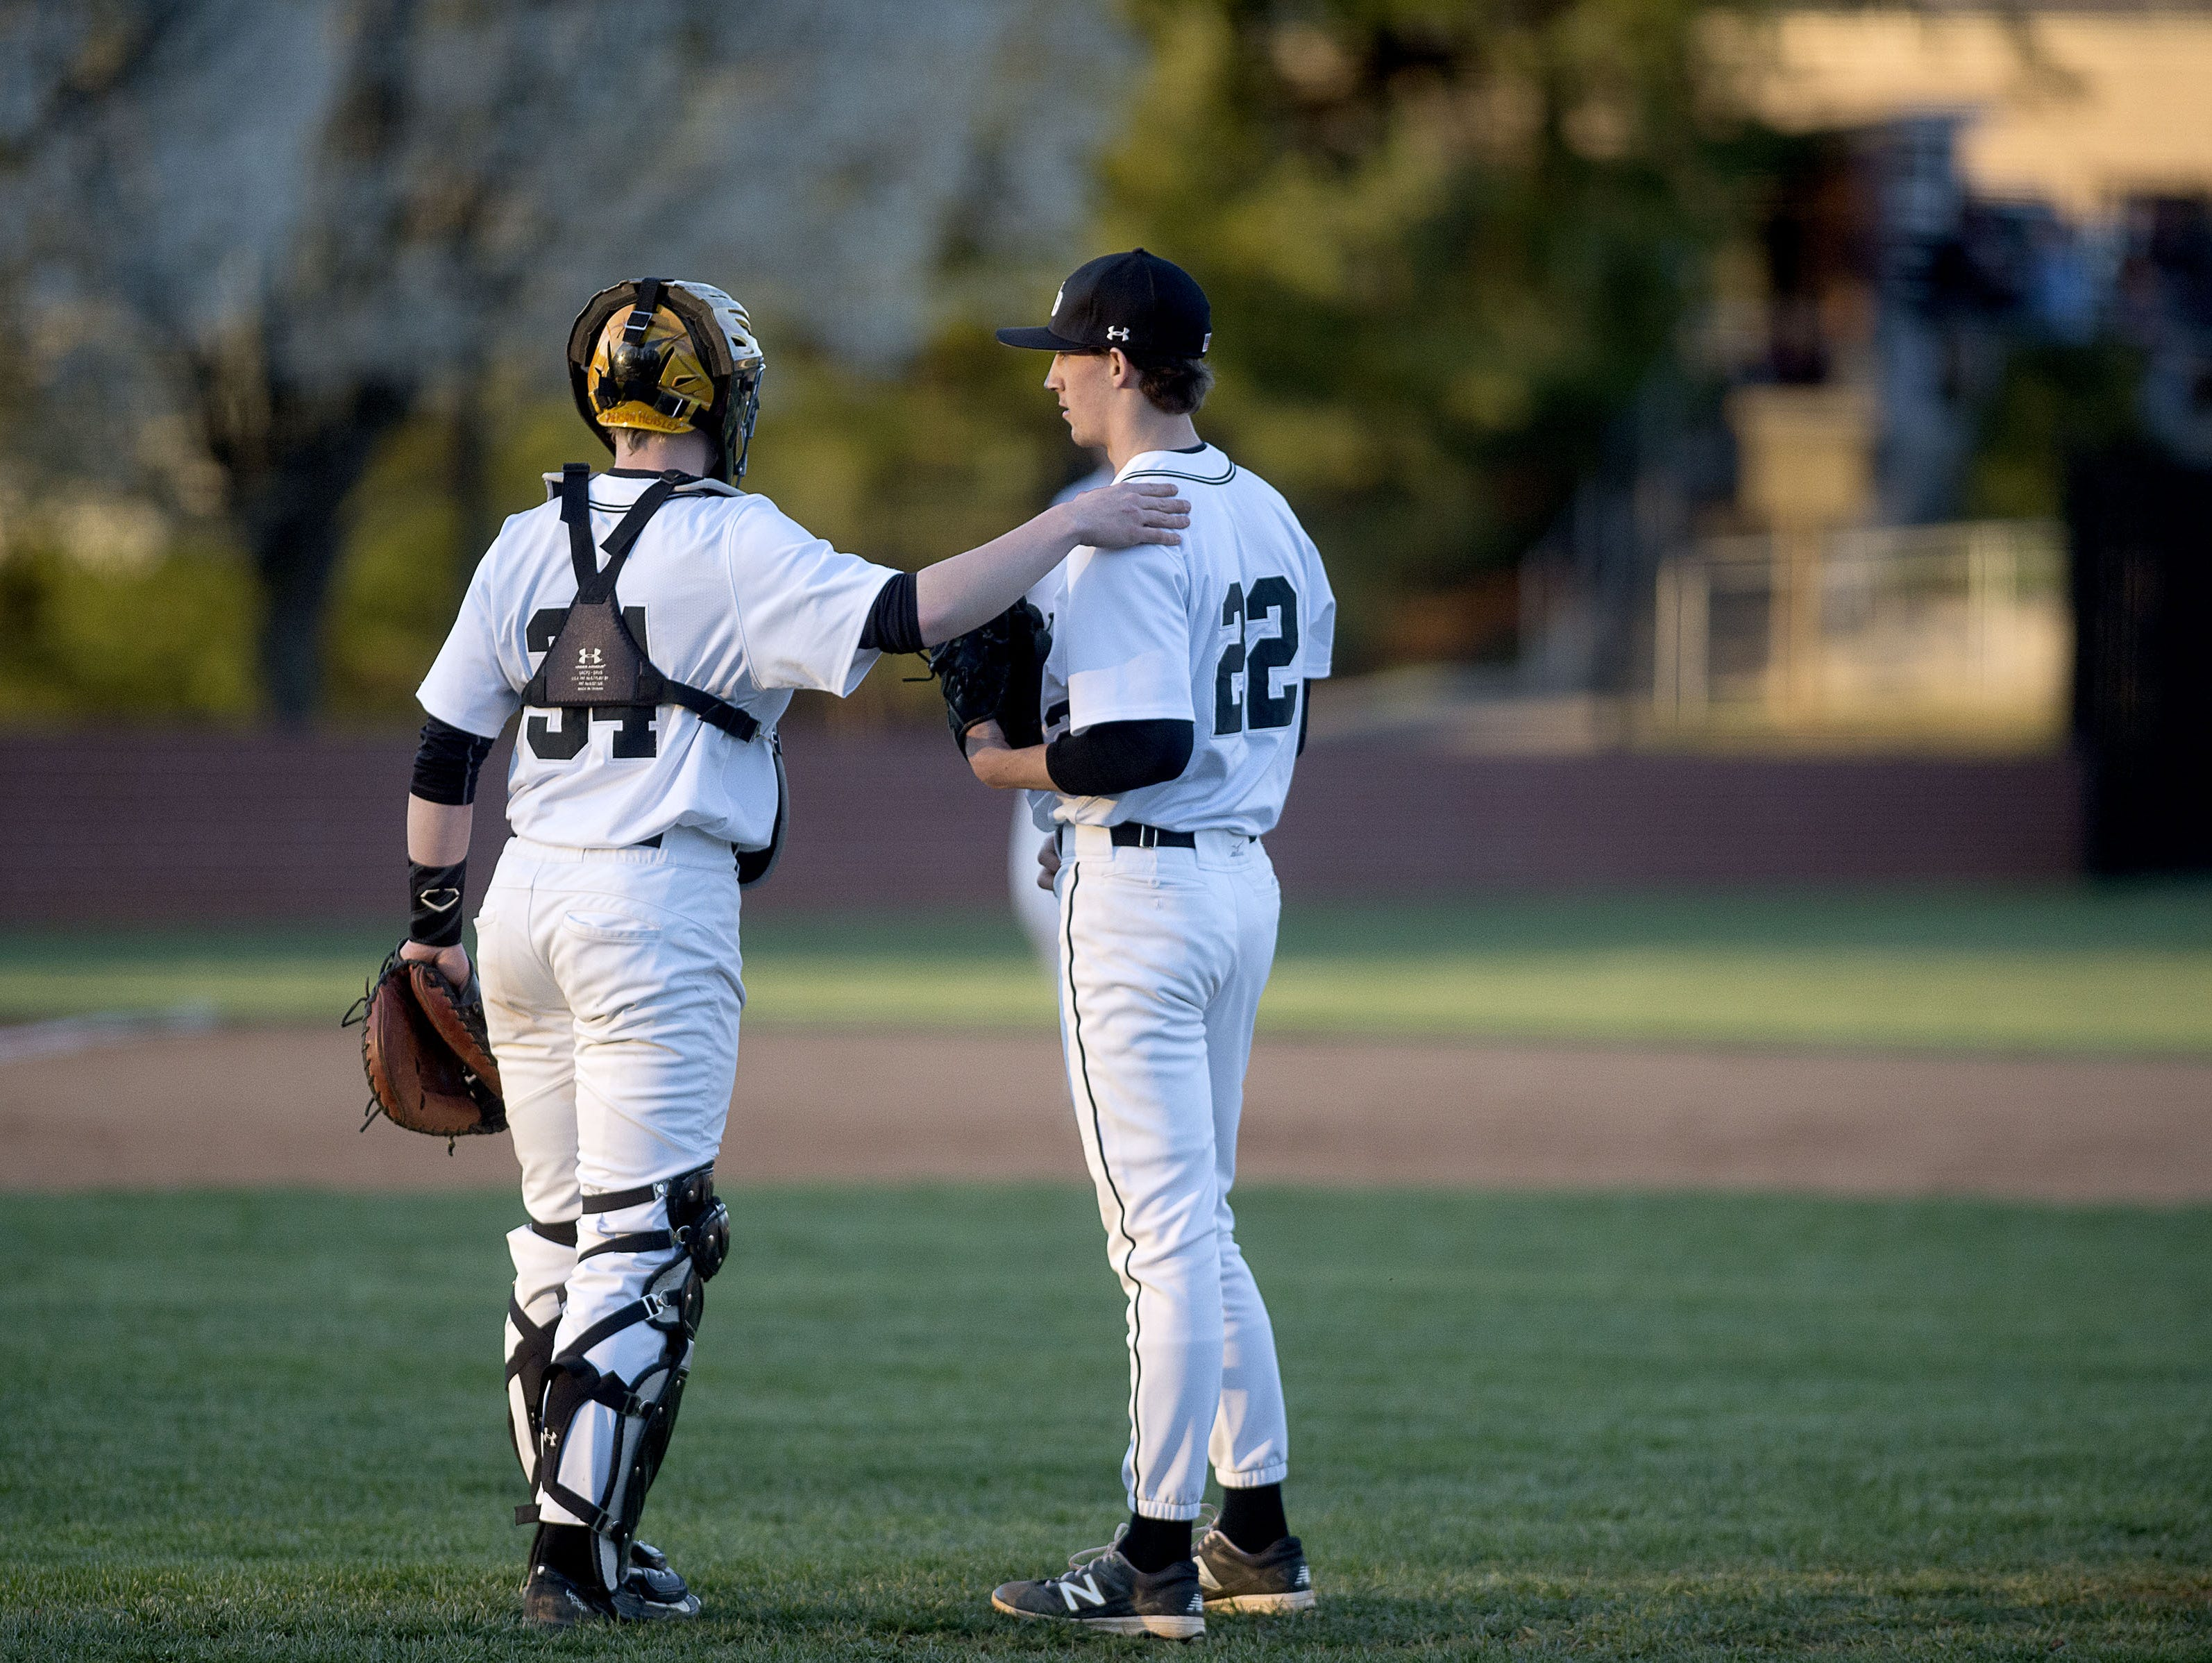 North Buncombe baseball players Pierson Hensley (34) and Robert Rogers (22).